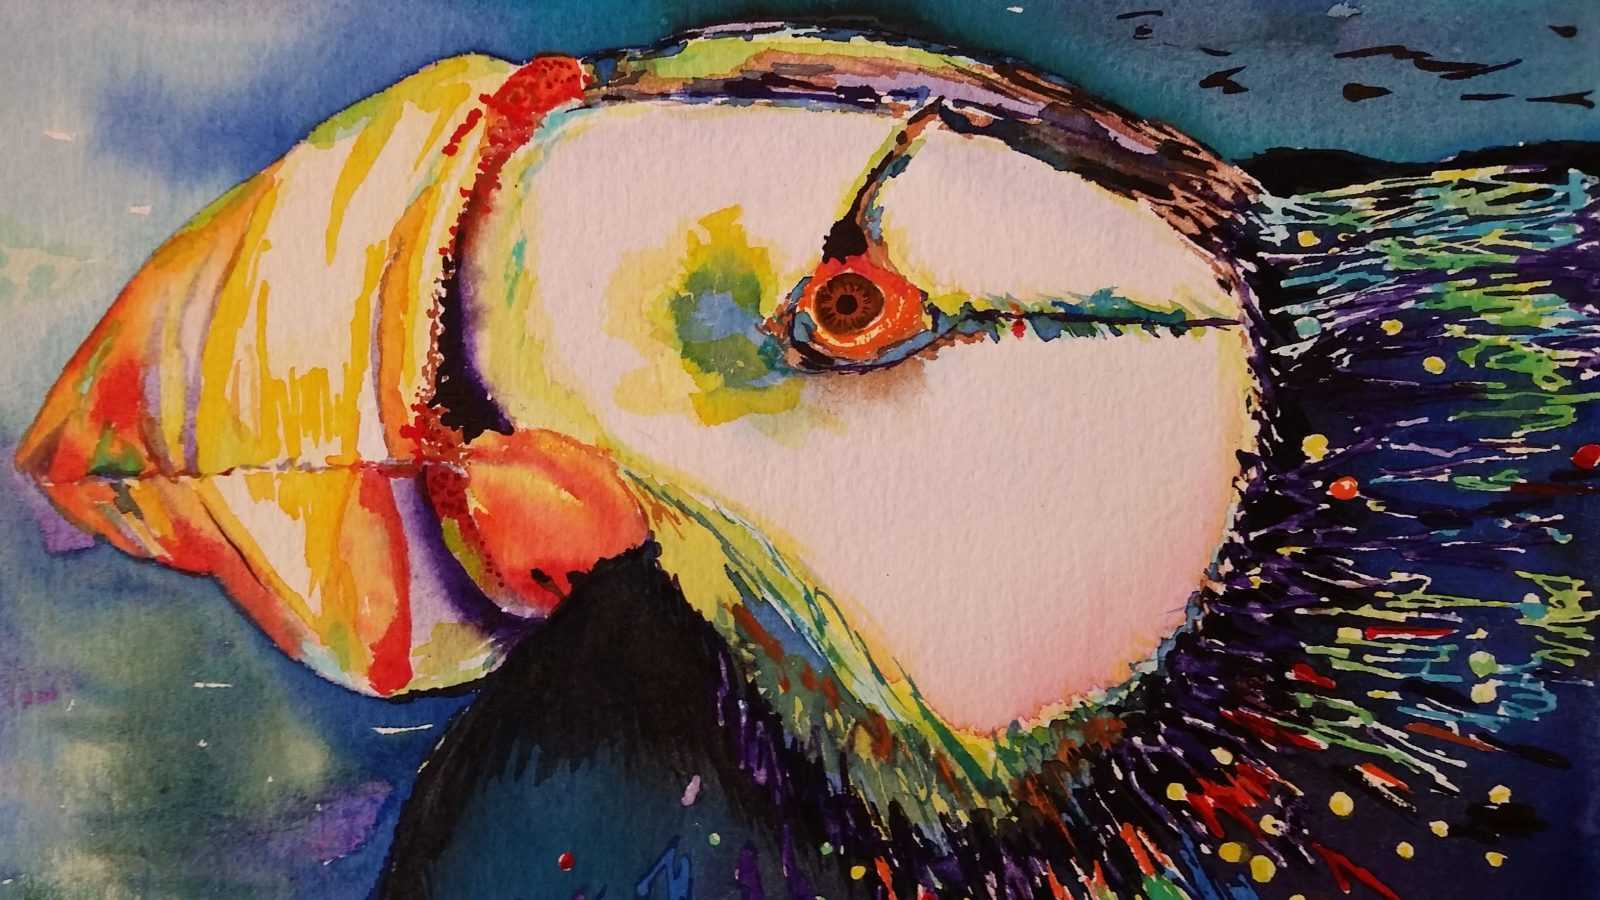 Watercolor painting of a colorful bird by Catherine Hingson